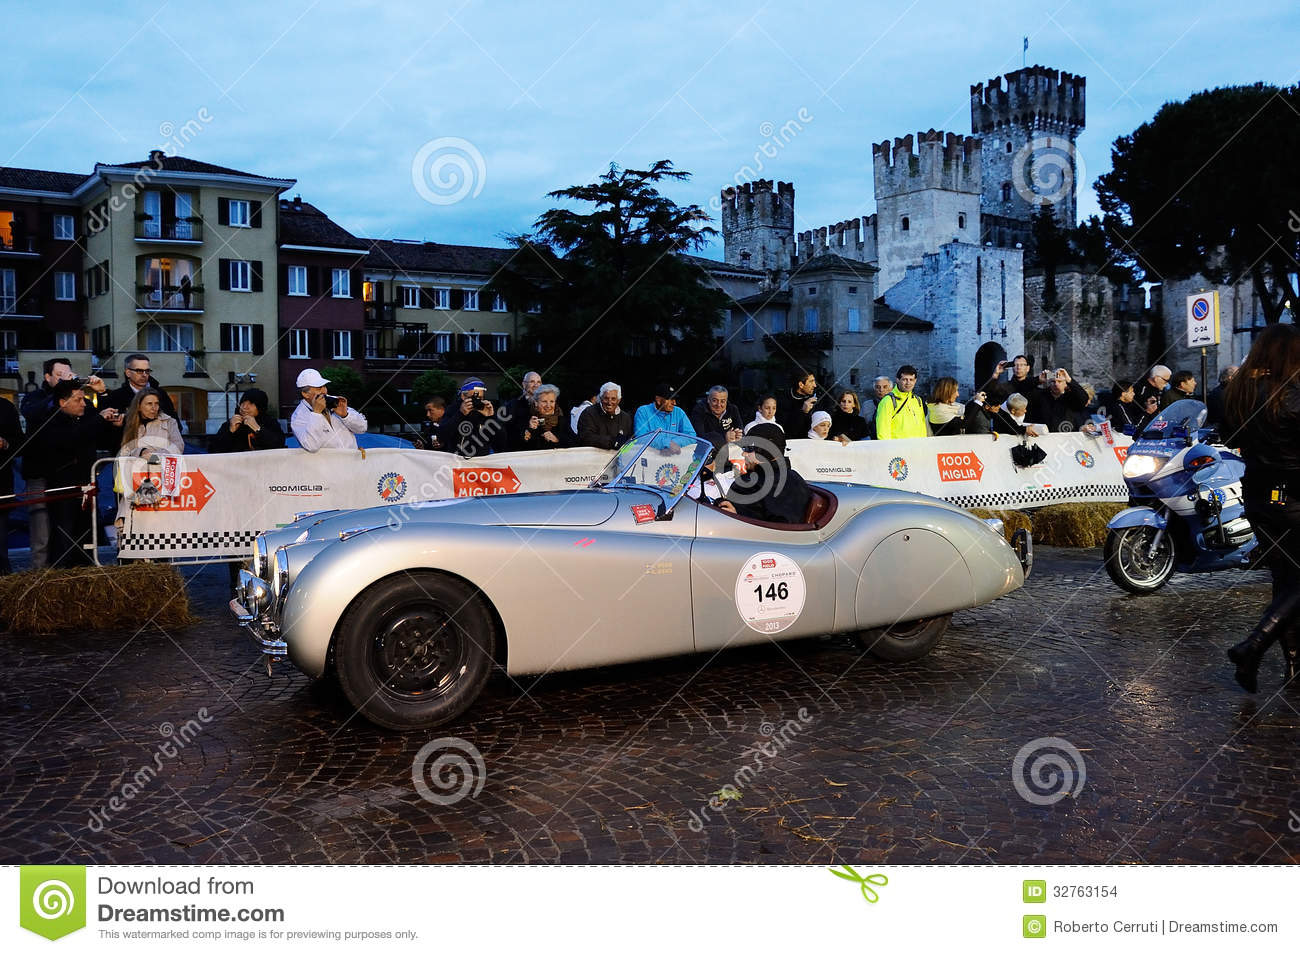 Silver Jaguar XK120 Alloy during the 1000 Miglia, in Sirmione